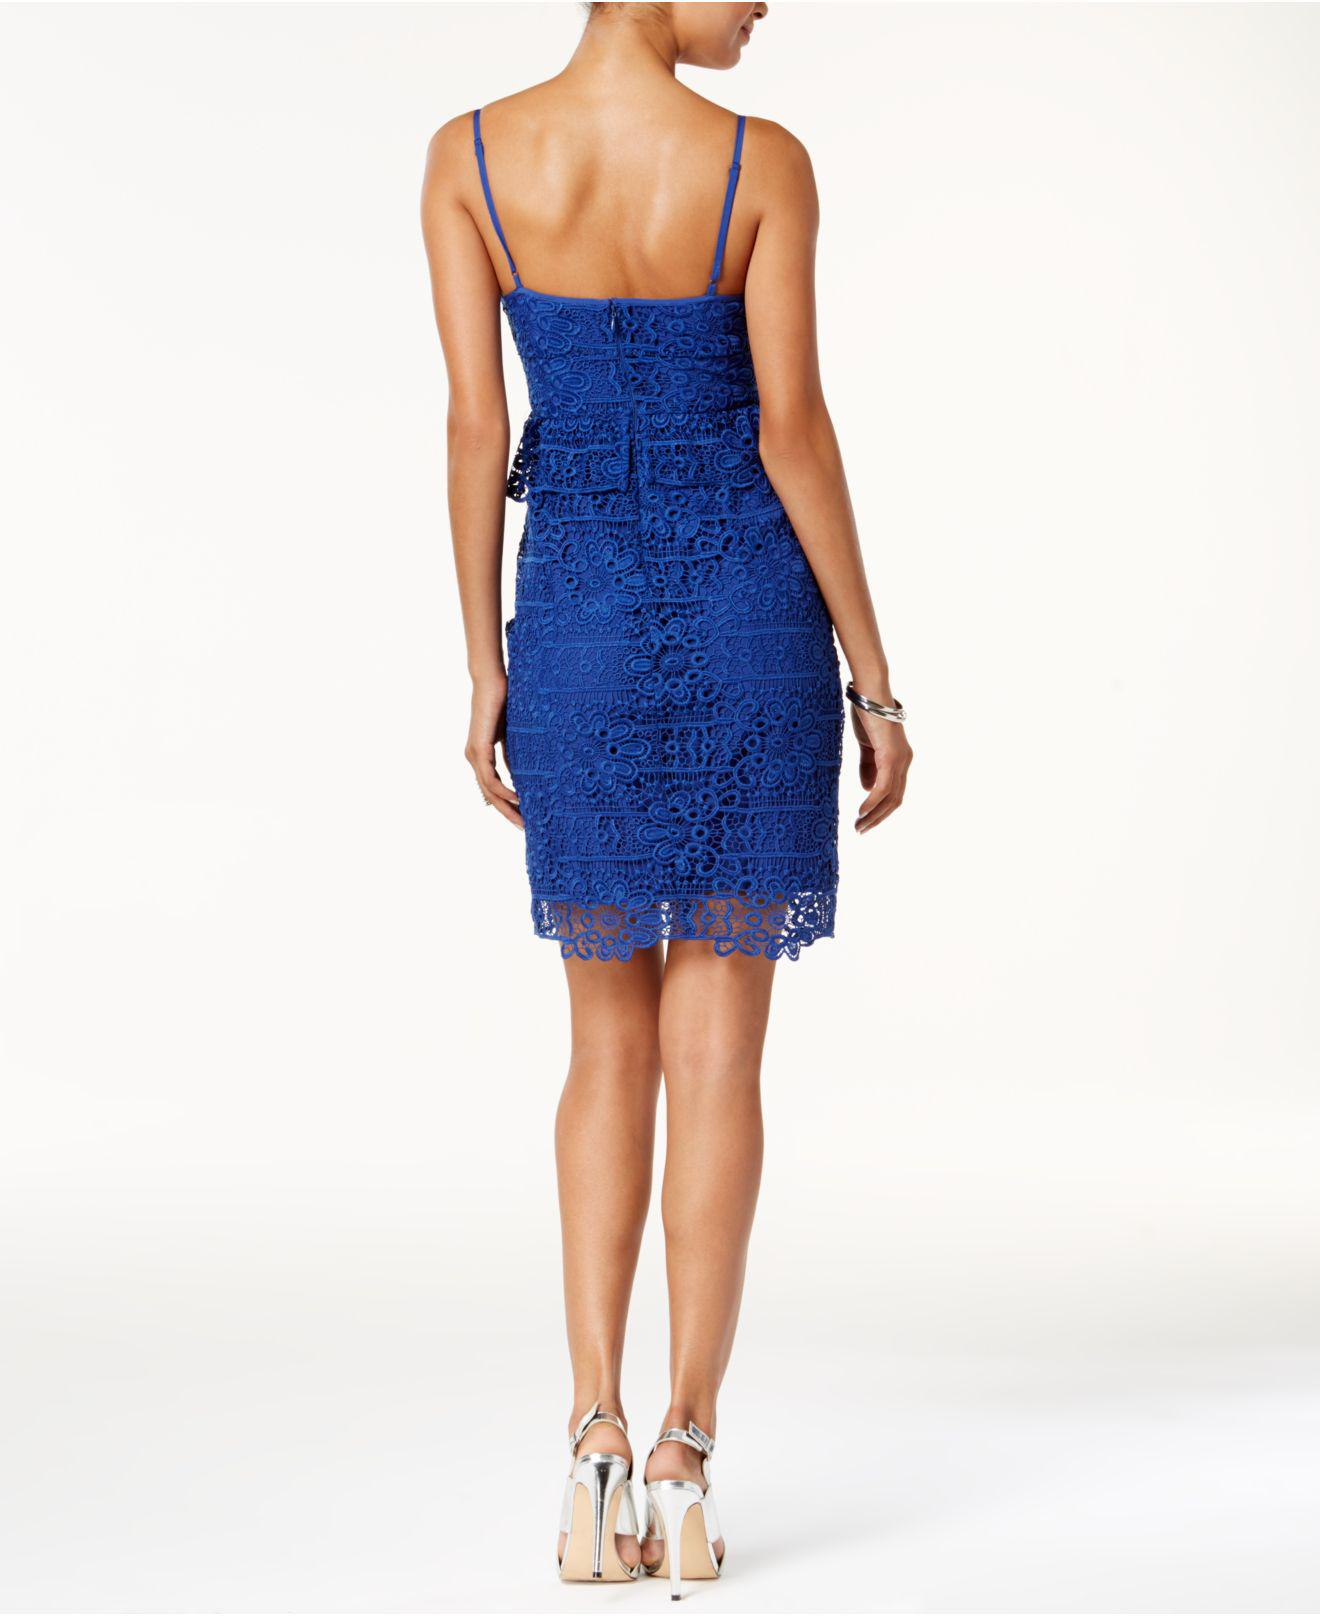 efa2b0b9274 Lyst - Guess Solstice Lace Bodycon Dress in Blue